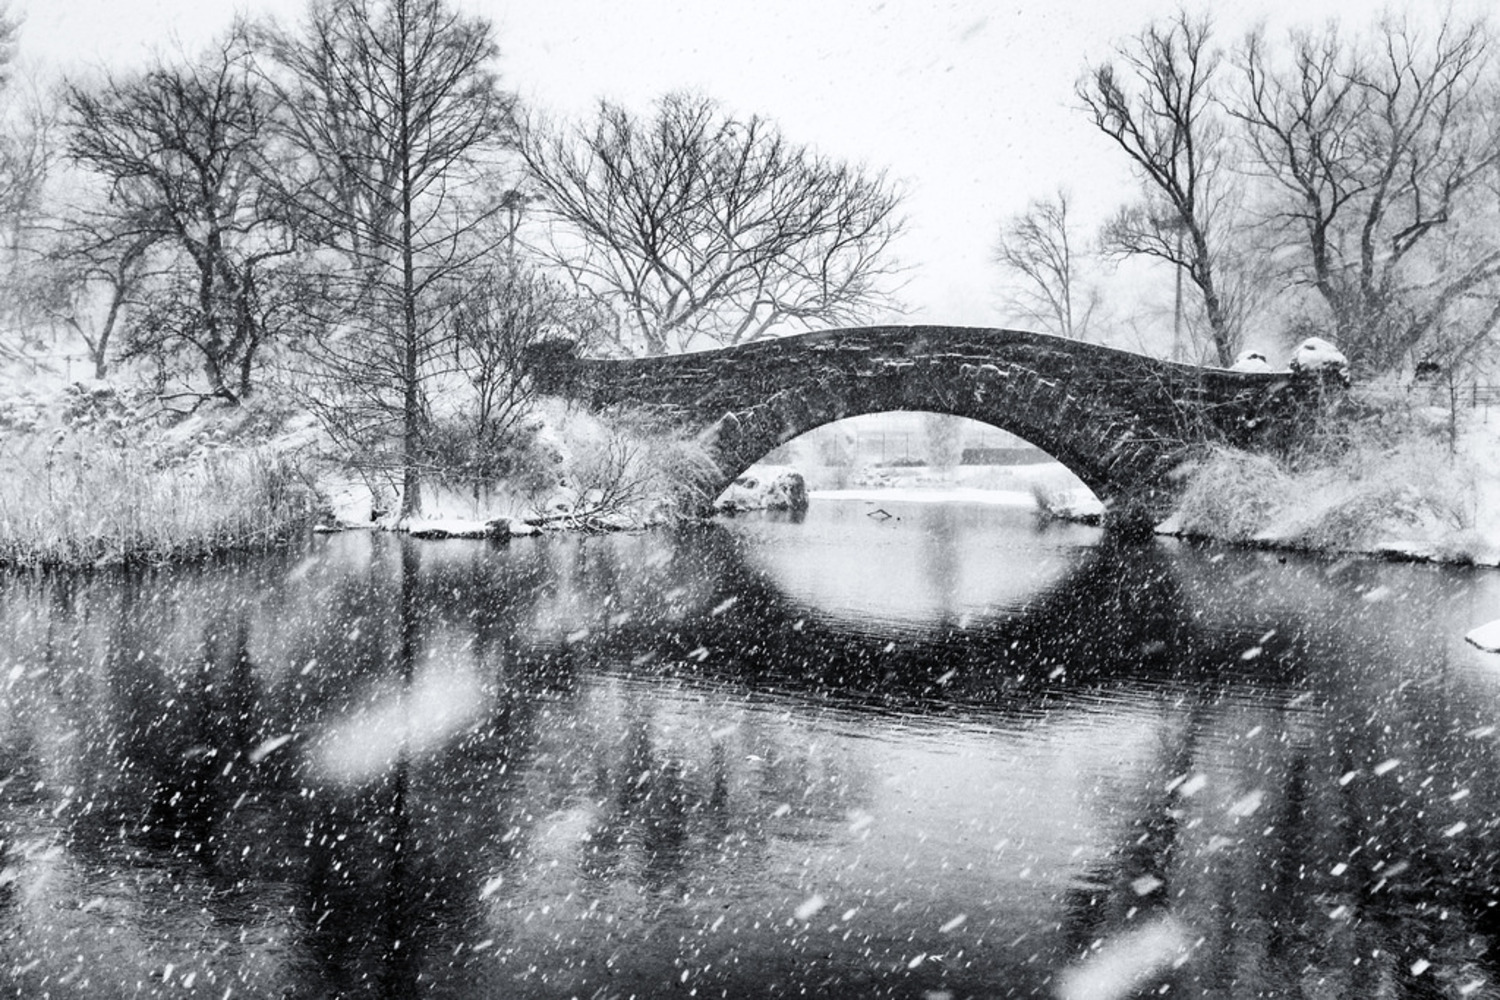 Snowing, Central Park | NYC